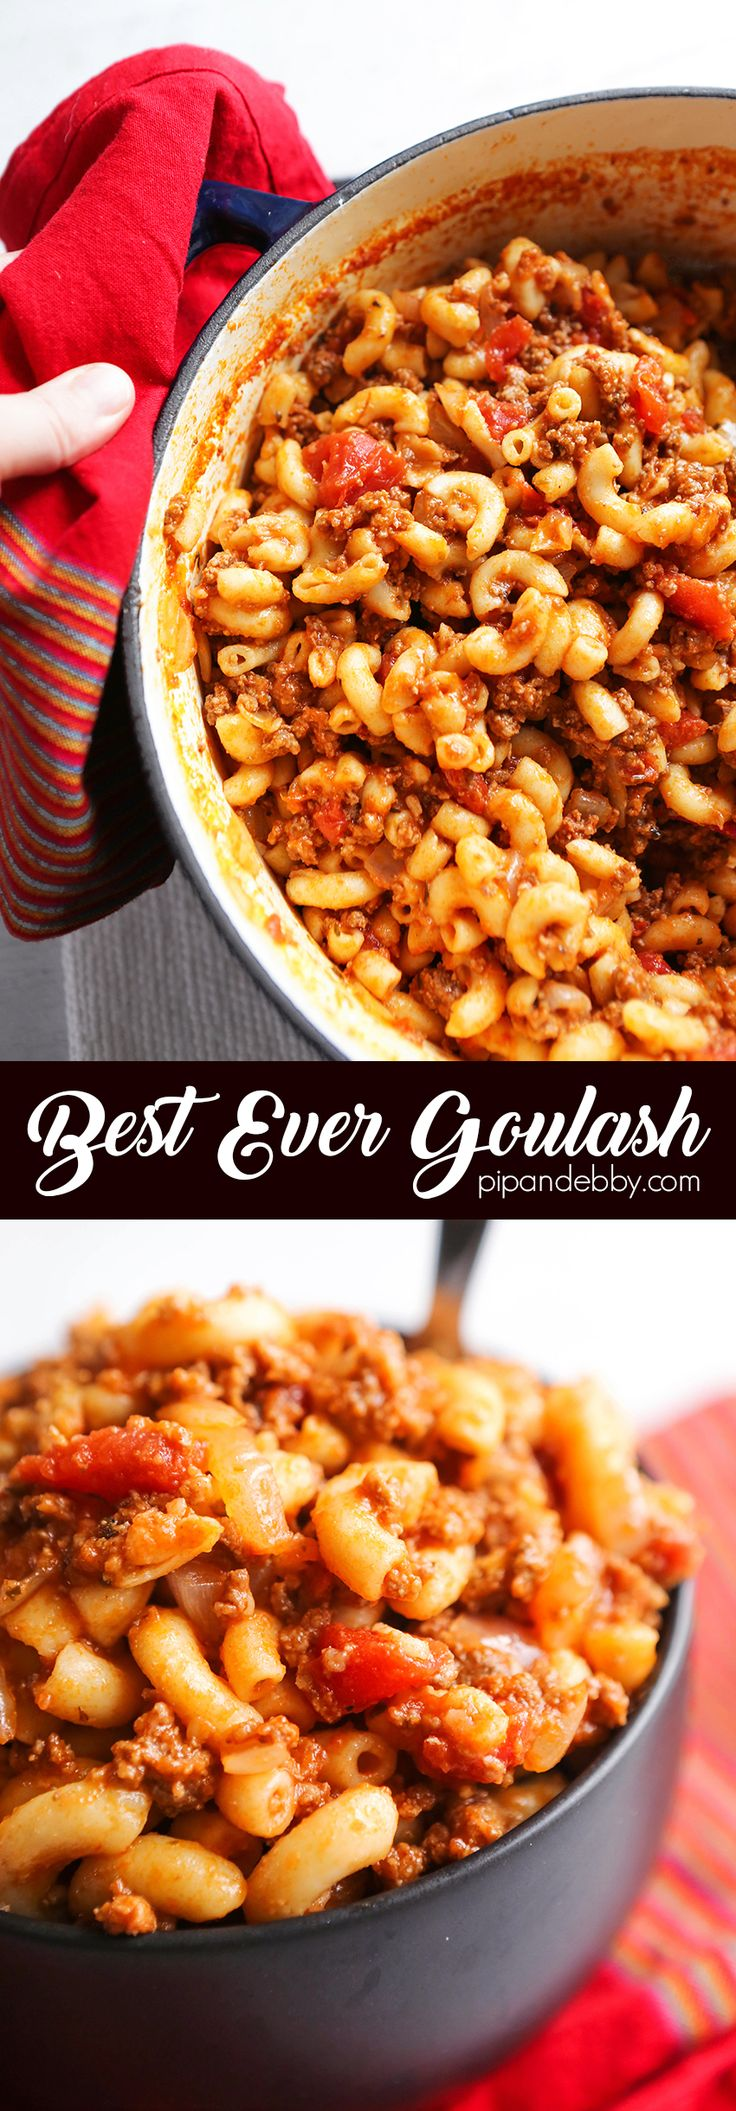 44 best recipes to cook images on pinterest cooking food best ever goulash this goulash is the most comforting of all comfort food it forumfinder Image collections